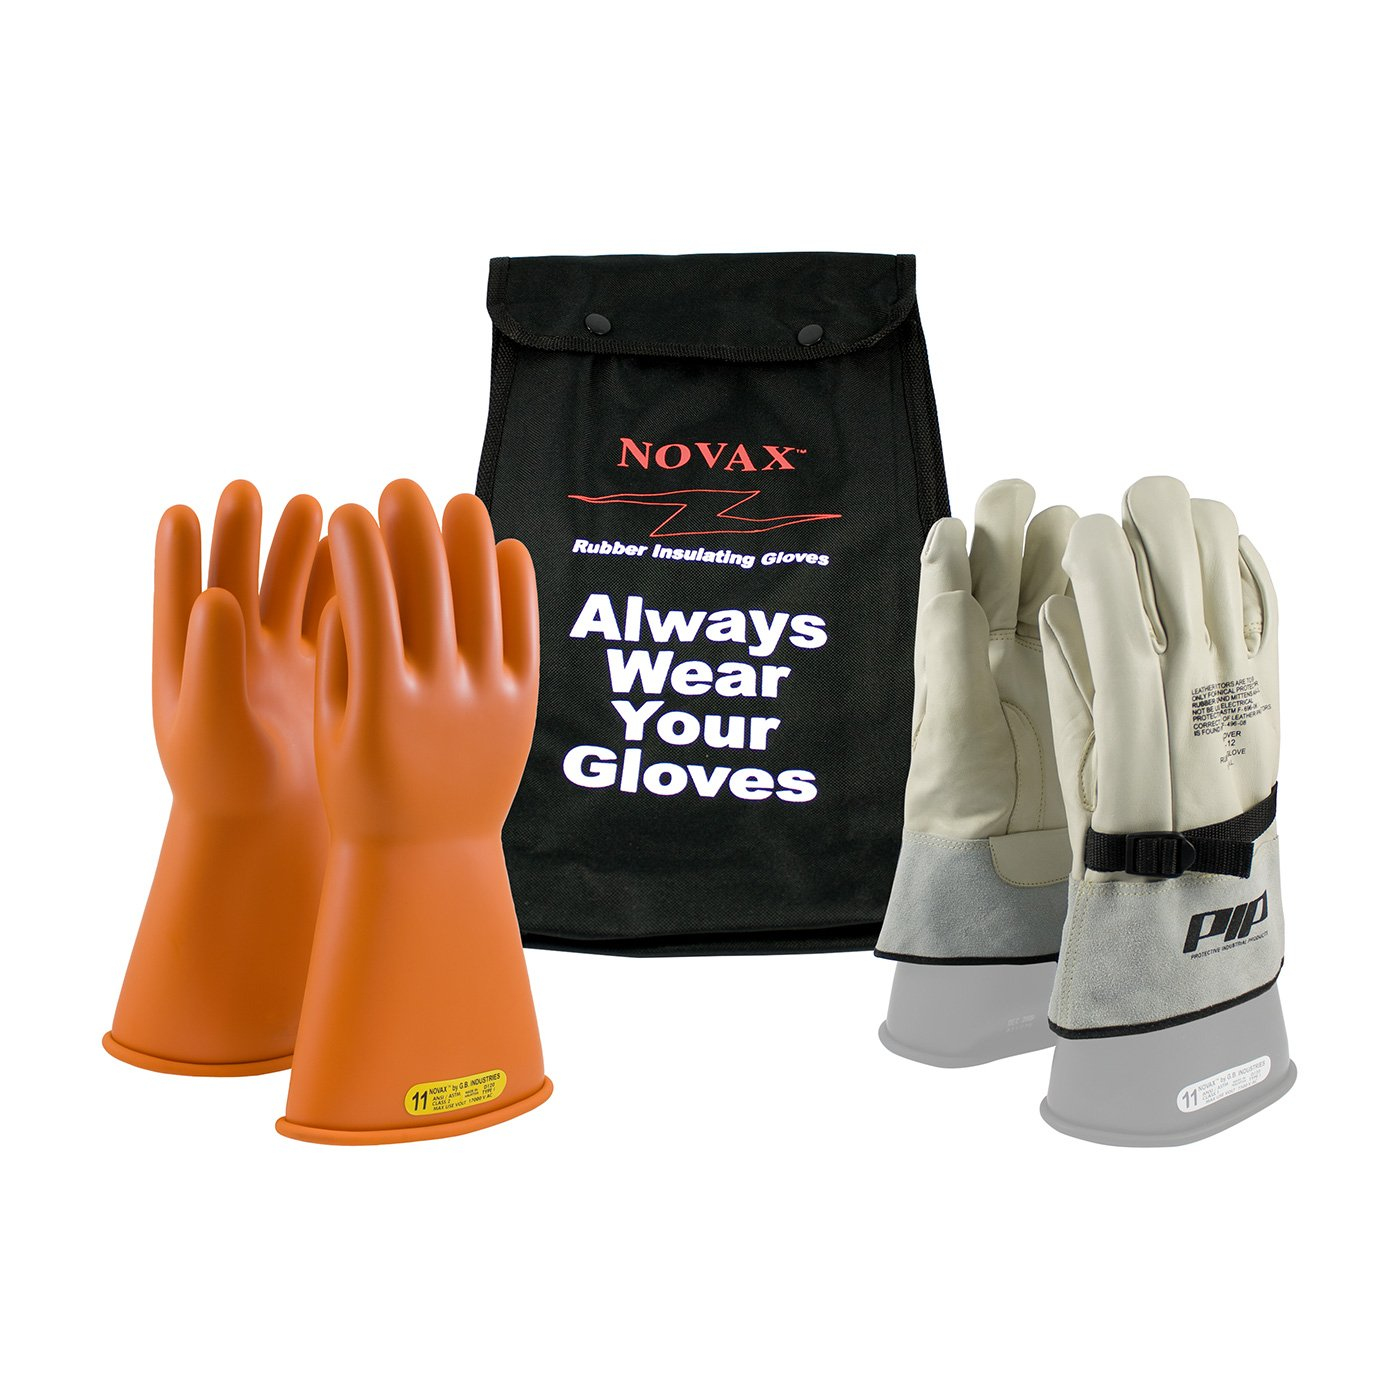 NOVAX 147-SK-2/9 Class 2 Electrical Safety Kit